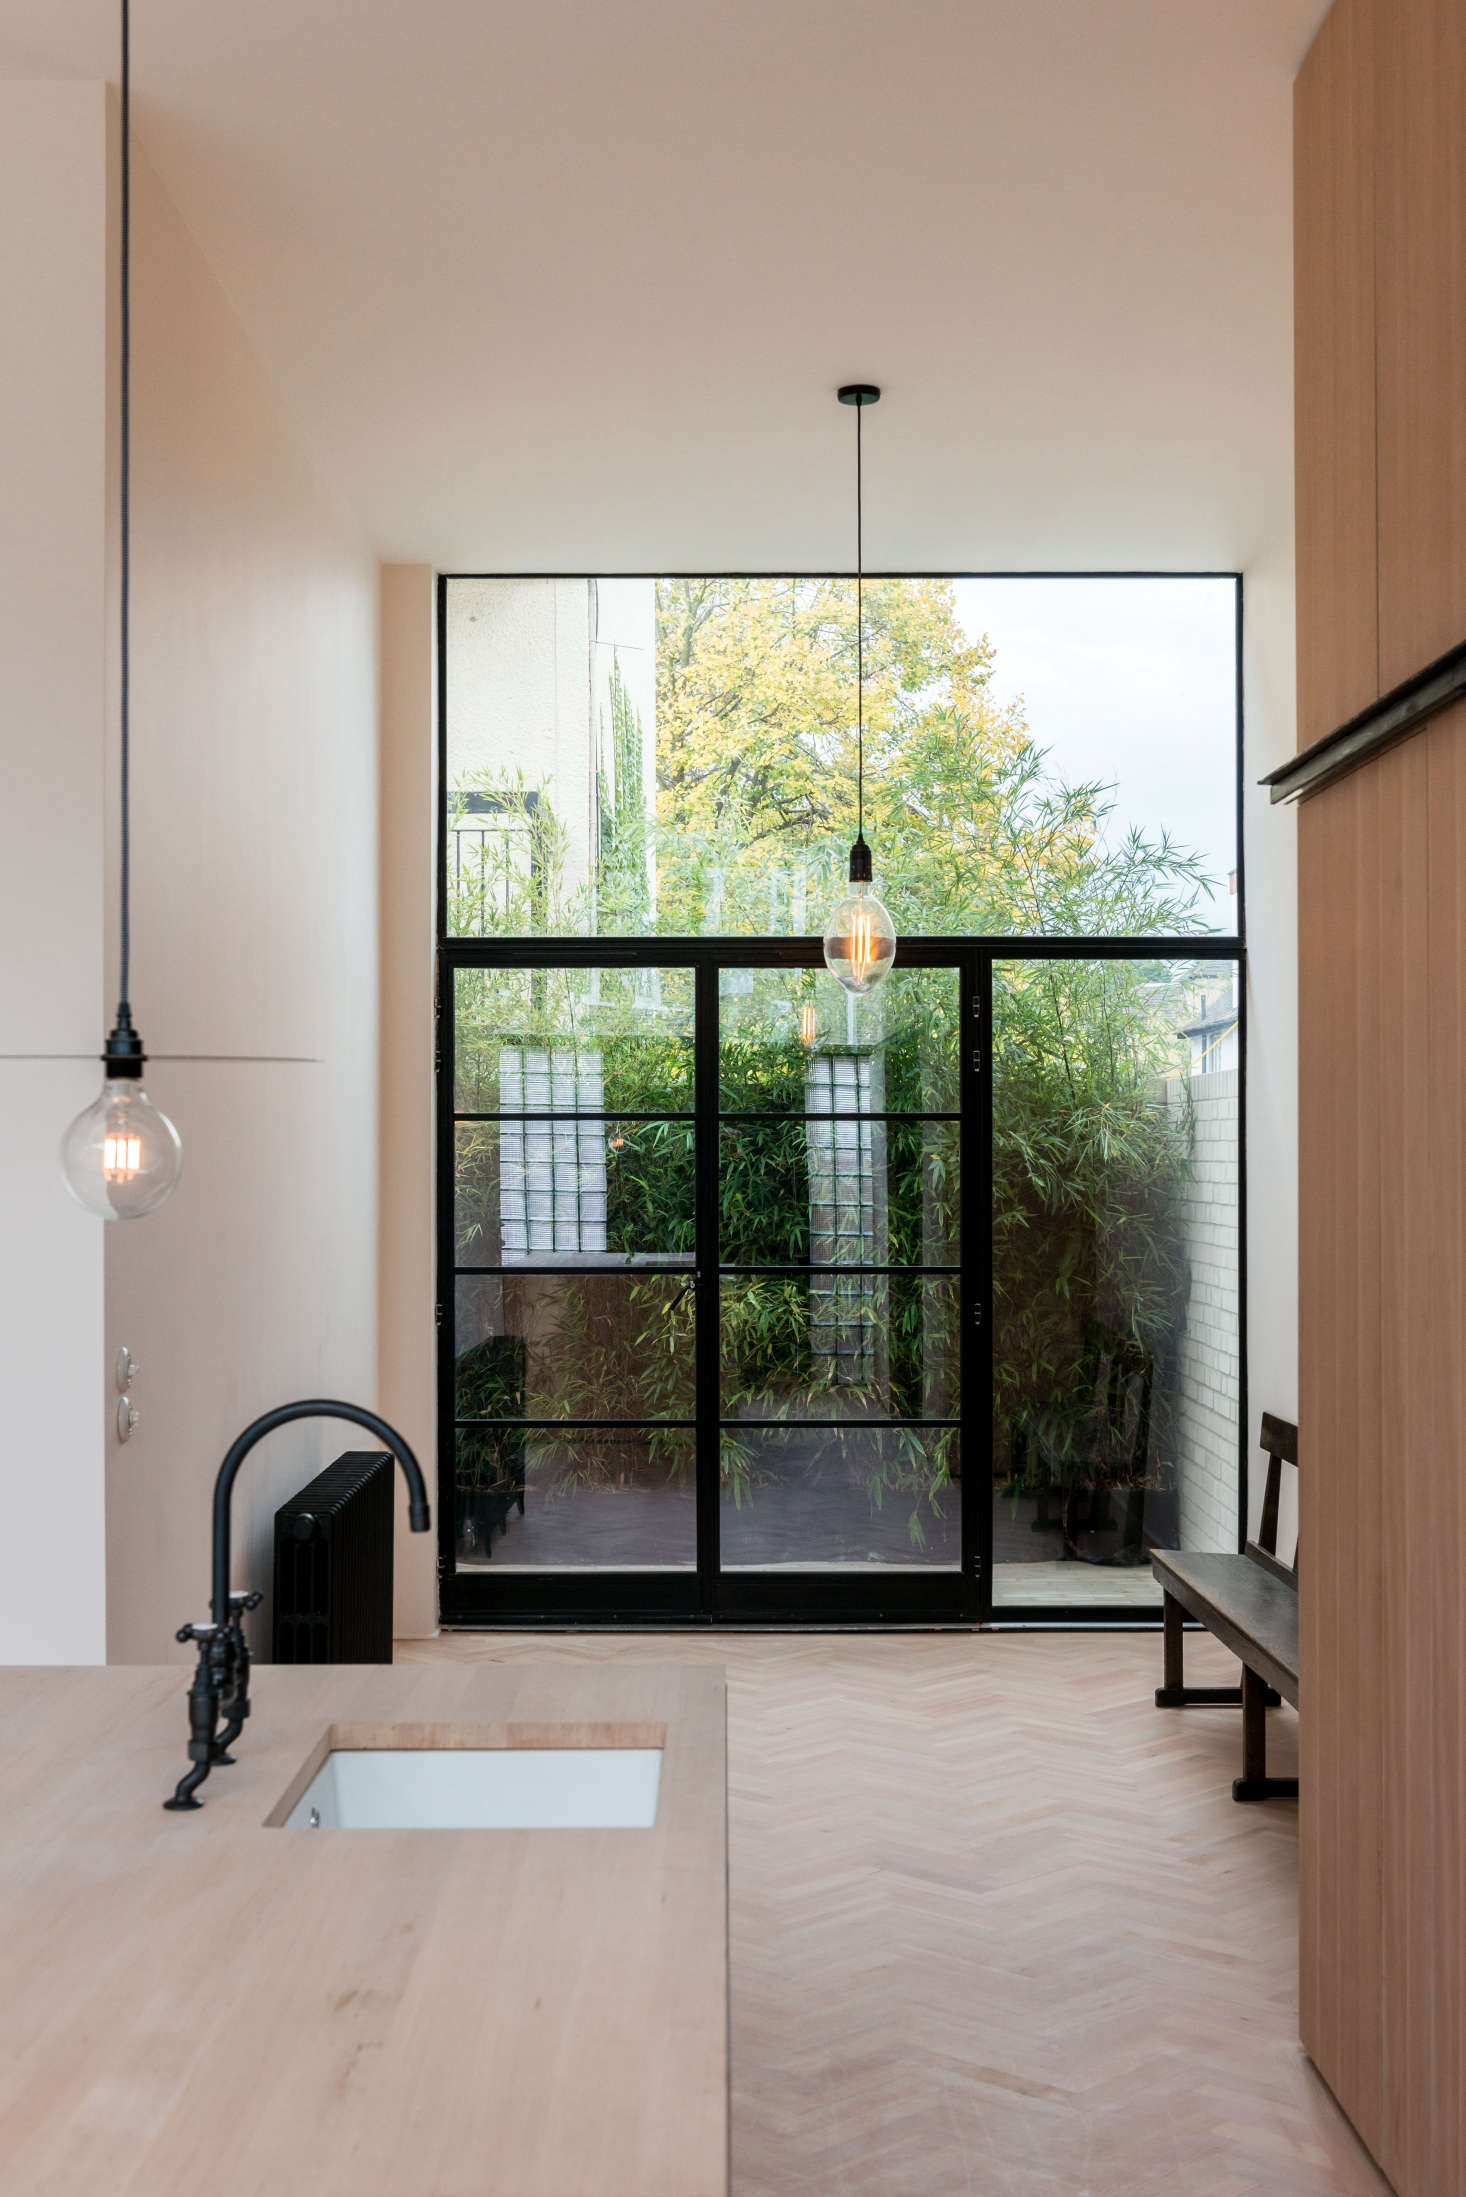 On the Market: A London New-Build Inspired by the Iconic Maison de Verre